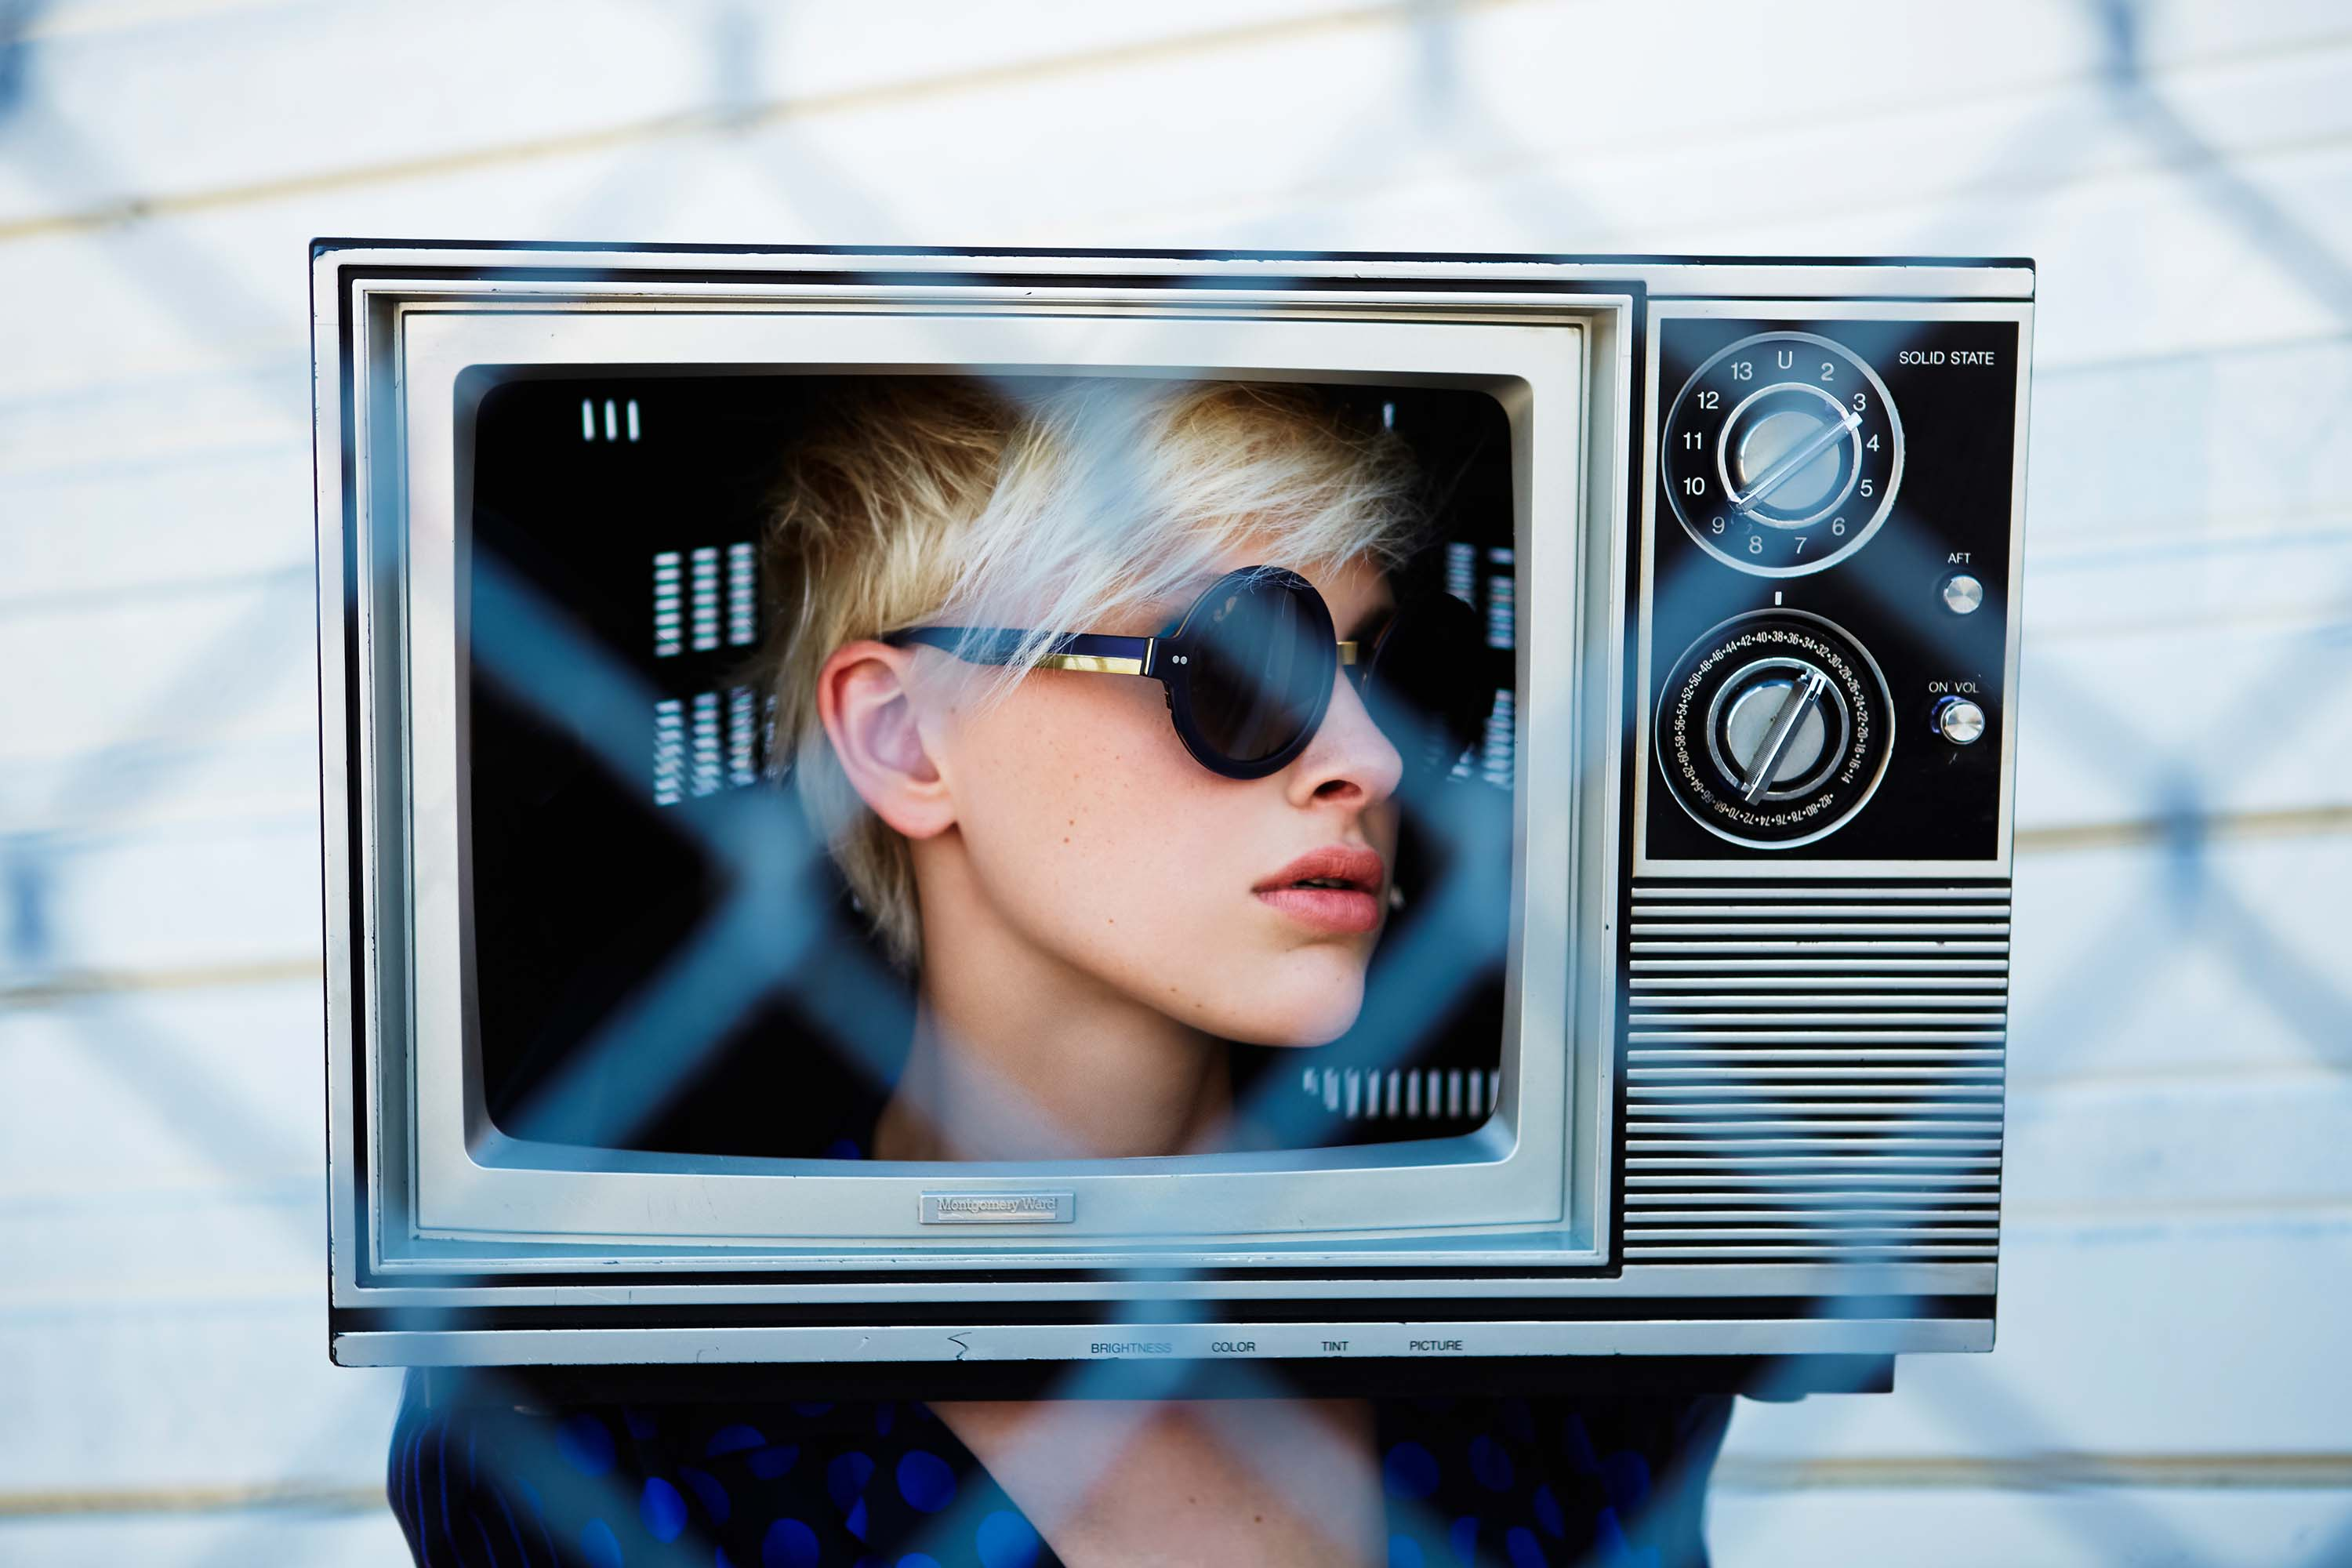 Woman with Round Sunglasses on with TV on her Head